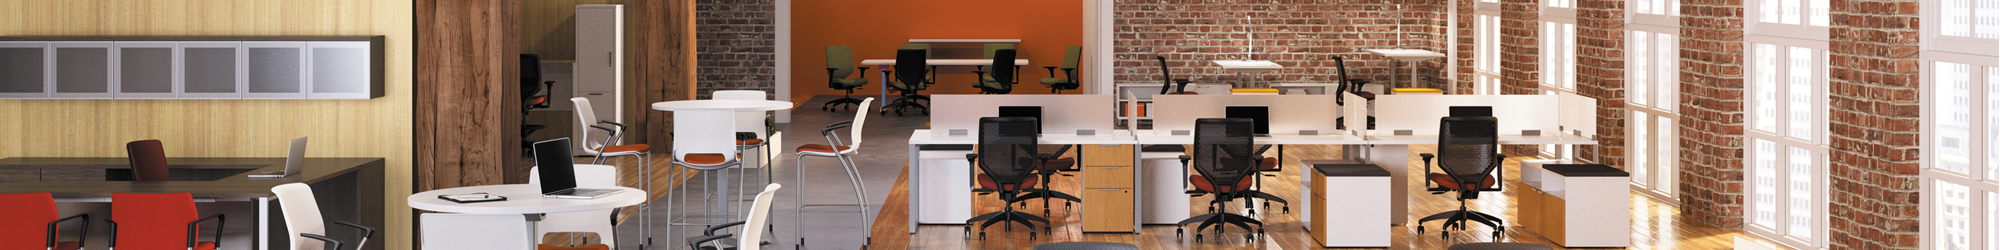 open office space rental furniture